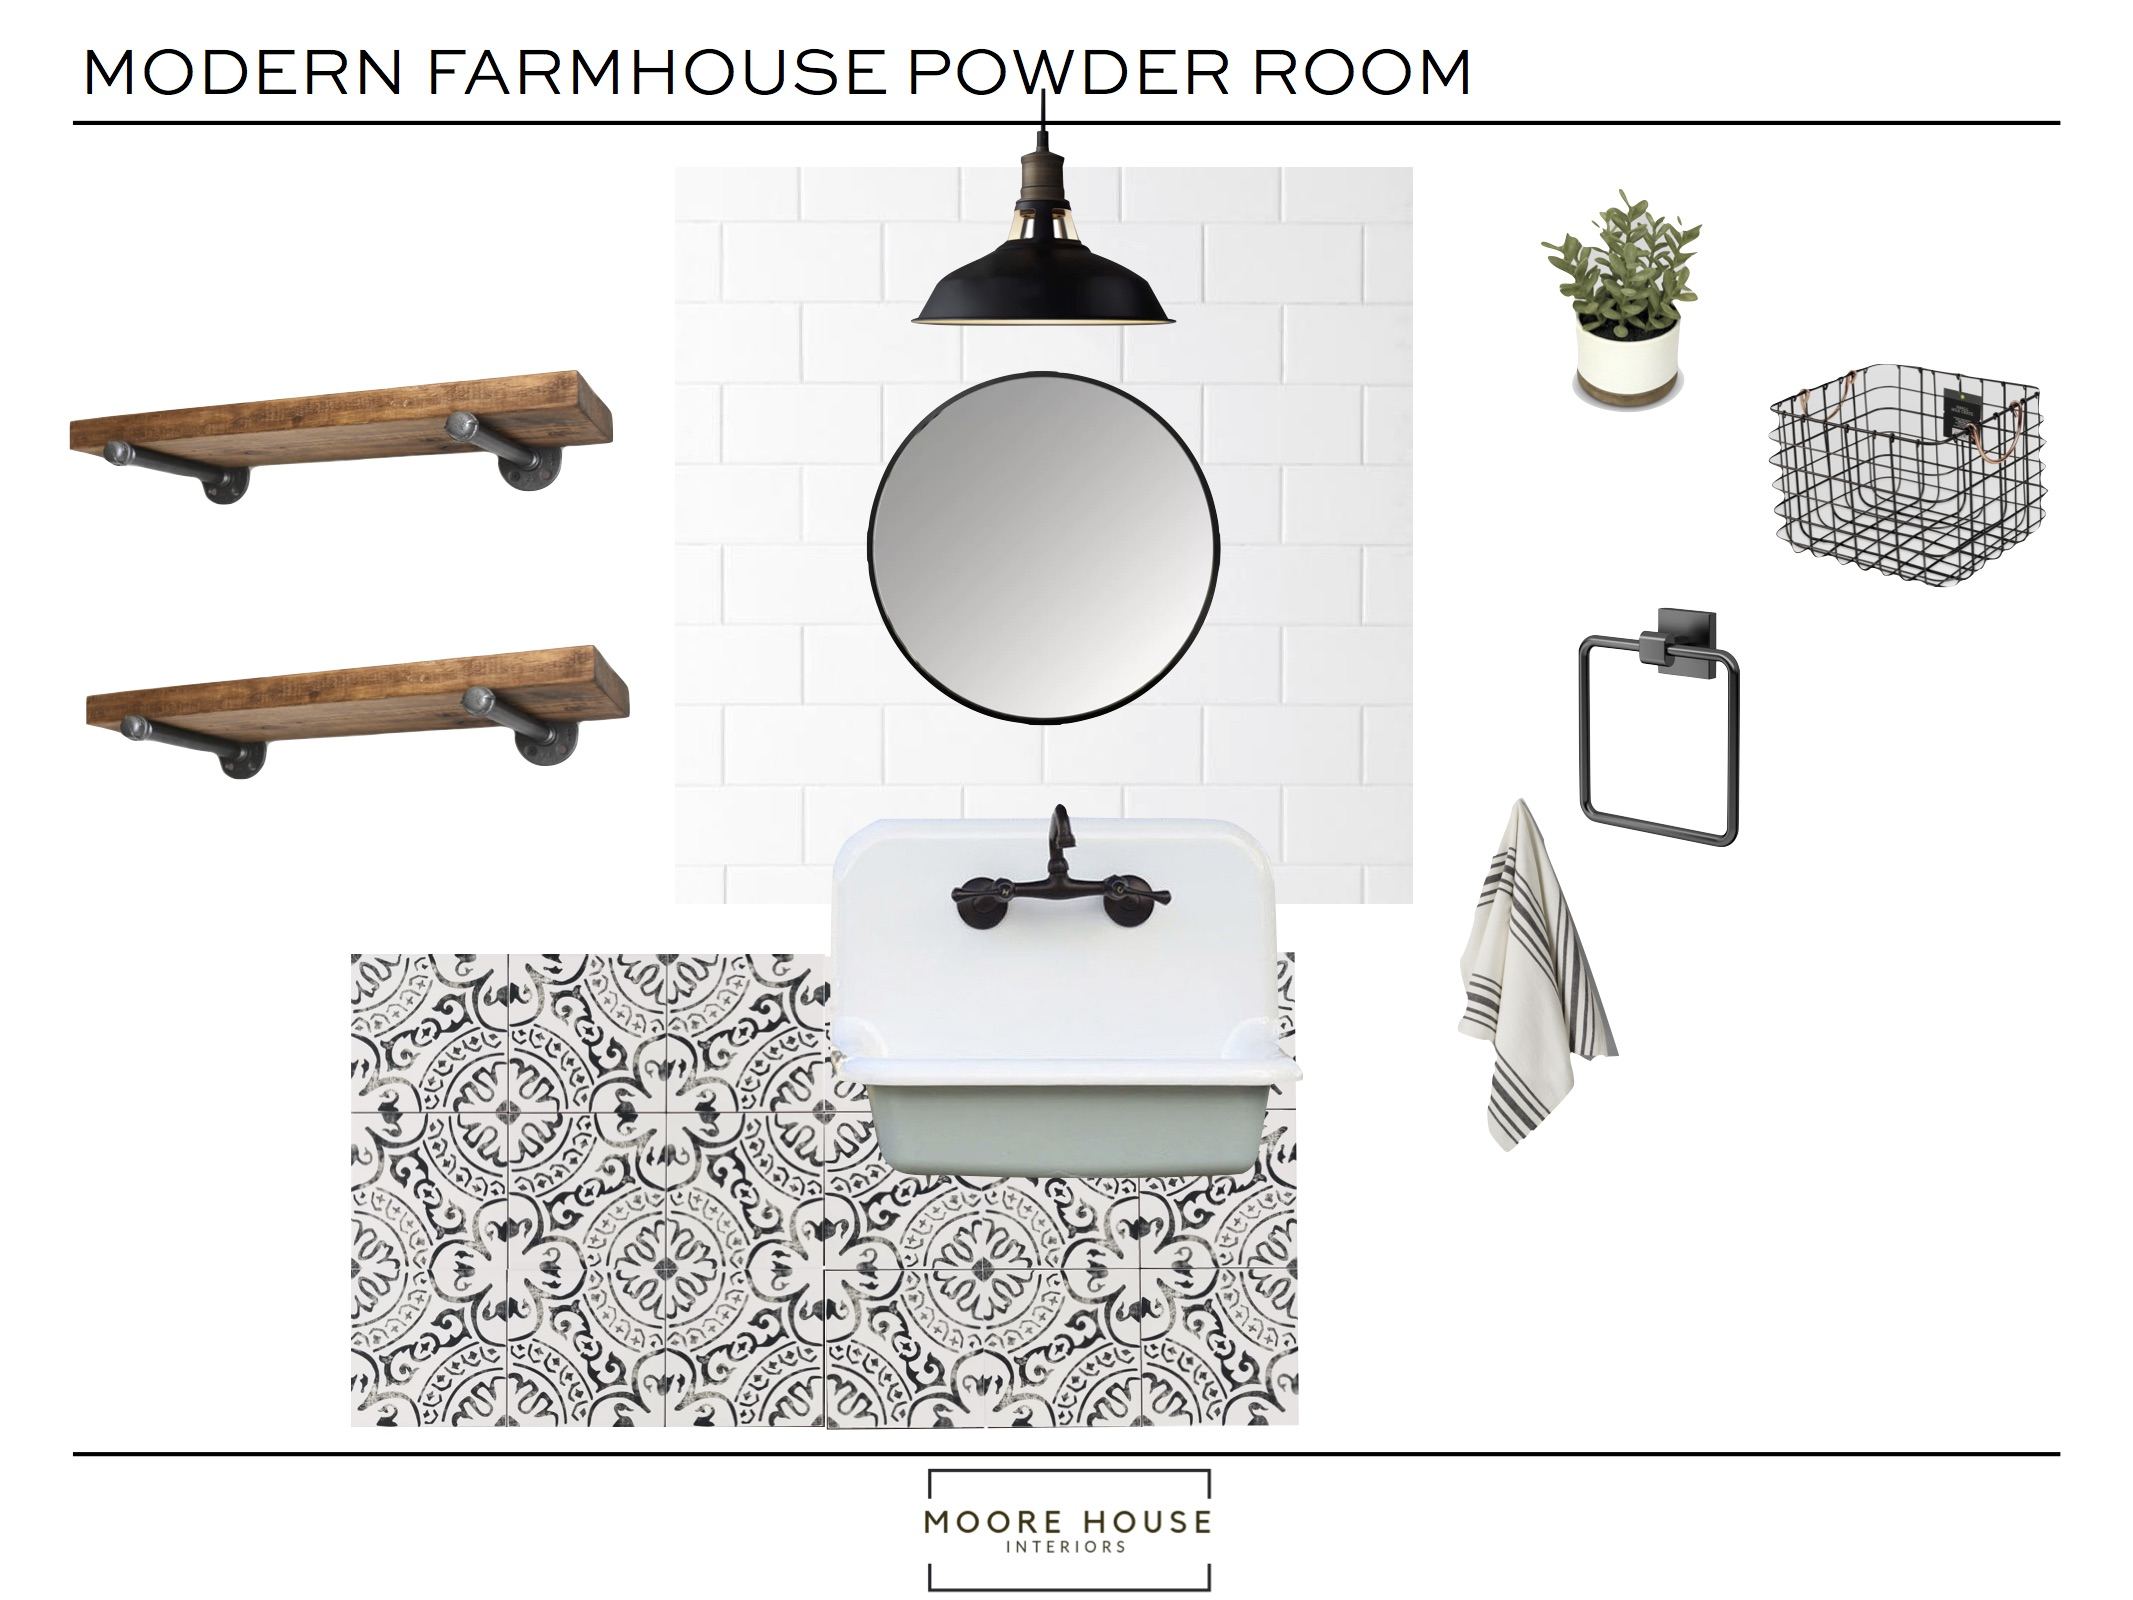 Modern Farmhouse Powder Room.jpg